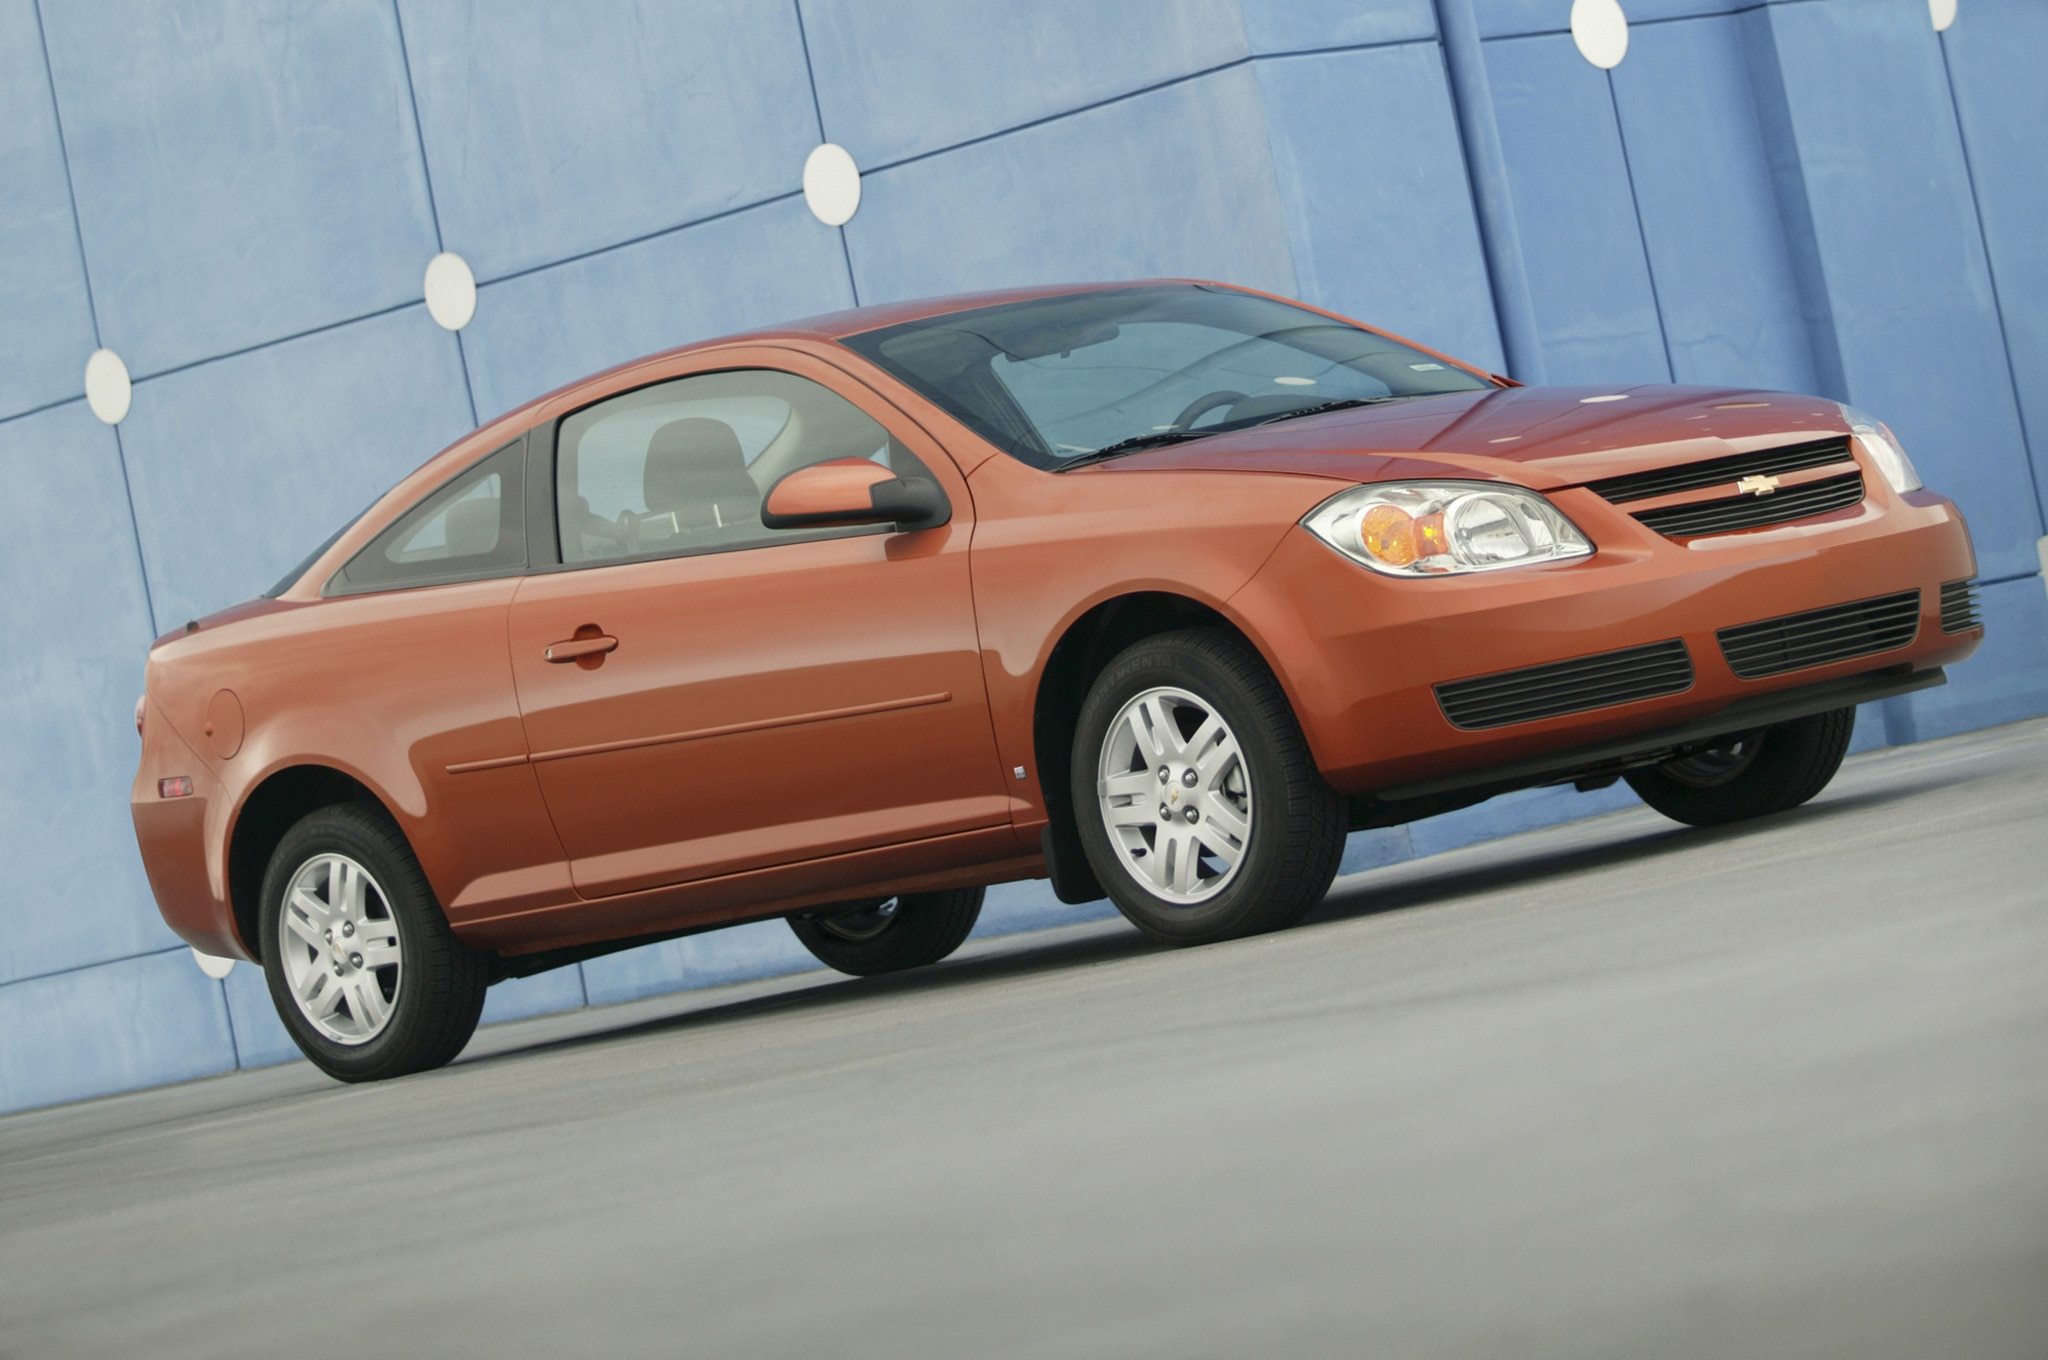 2007 Chevrolet Cobalt Coupe Front Side View4